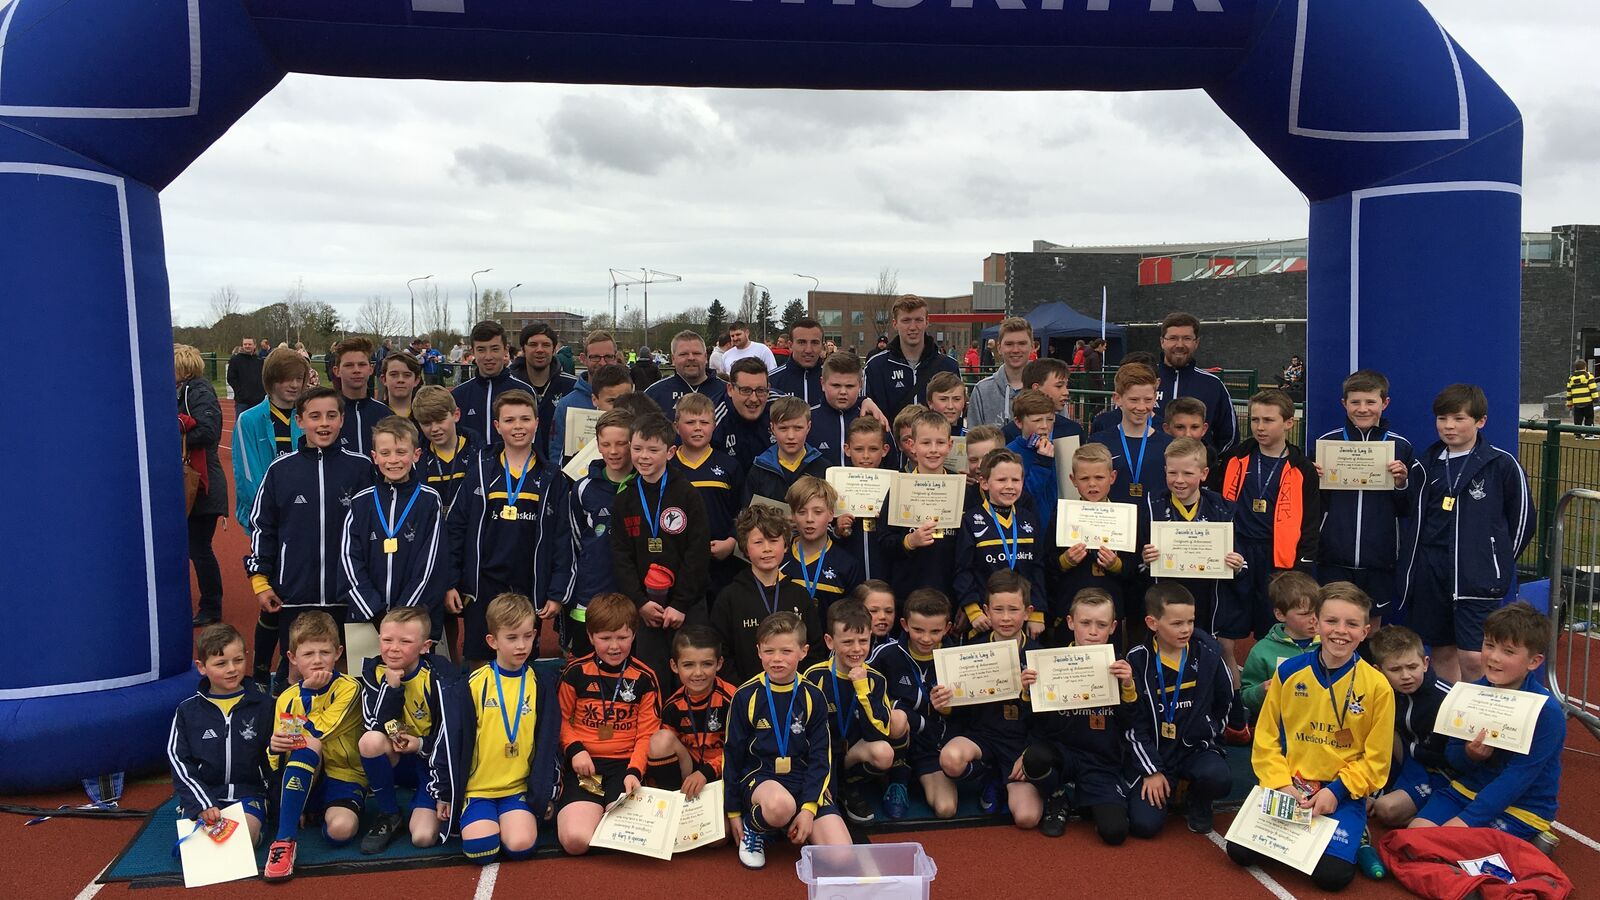 Ormskirk FC Takes Part in Charity Fun Run for Autism